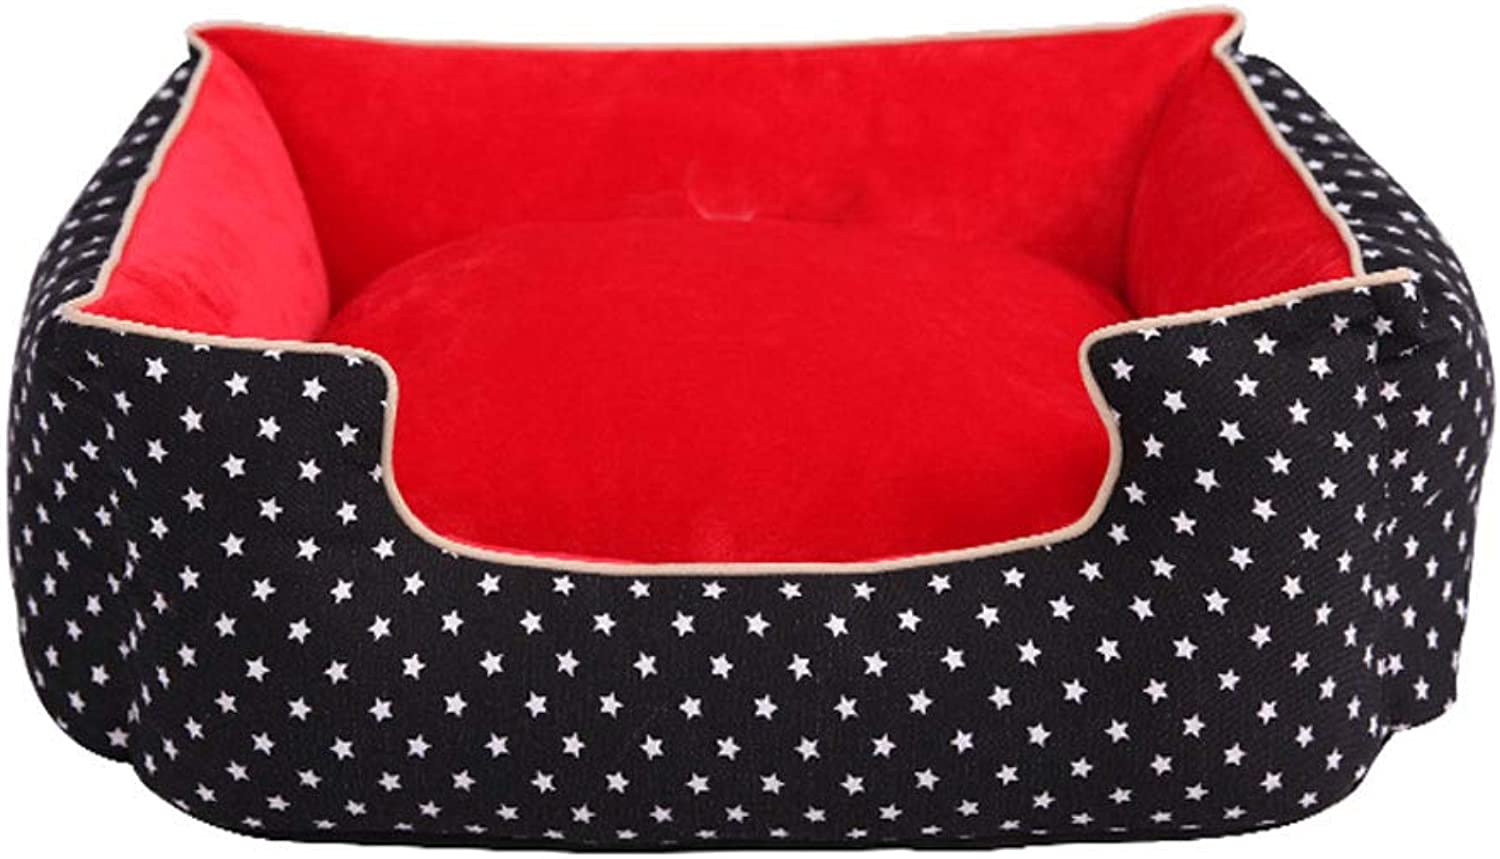 GCHOME Dog bed Dog Bed,Washable Removable Cat Bed Cat Nest,Waterproof Breathable Nonslip Warm Cushion Dog Sofa Indoor Medium Pet Nest (color   BLACK, Size   S)